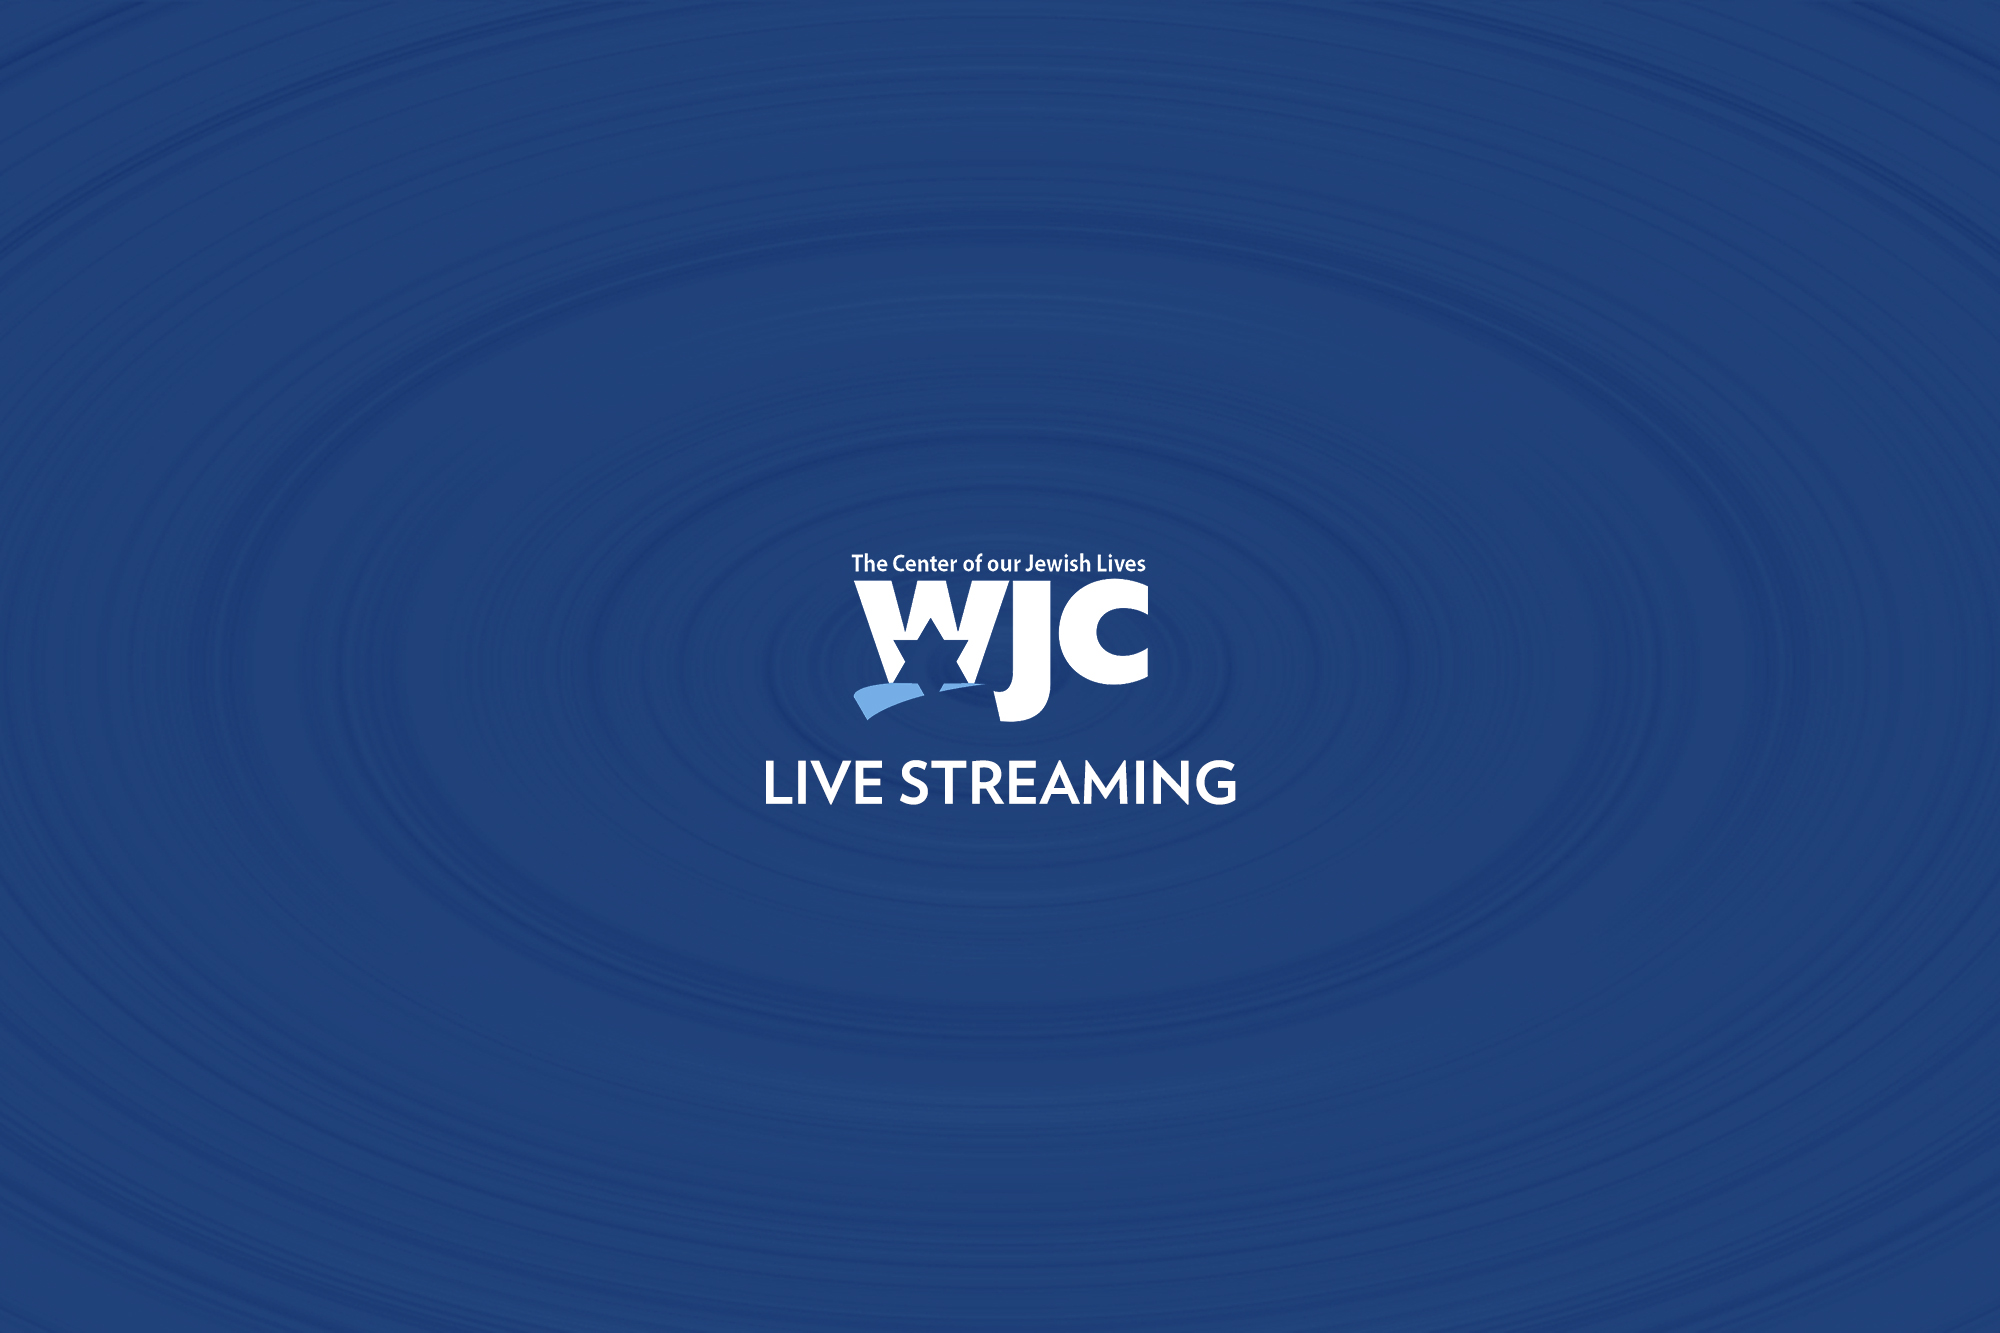 WJC Live Streaming